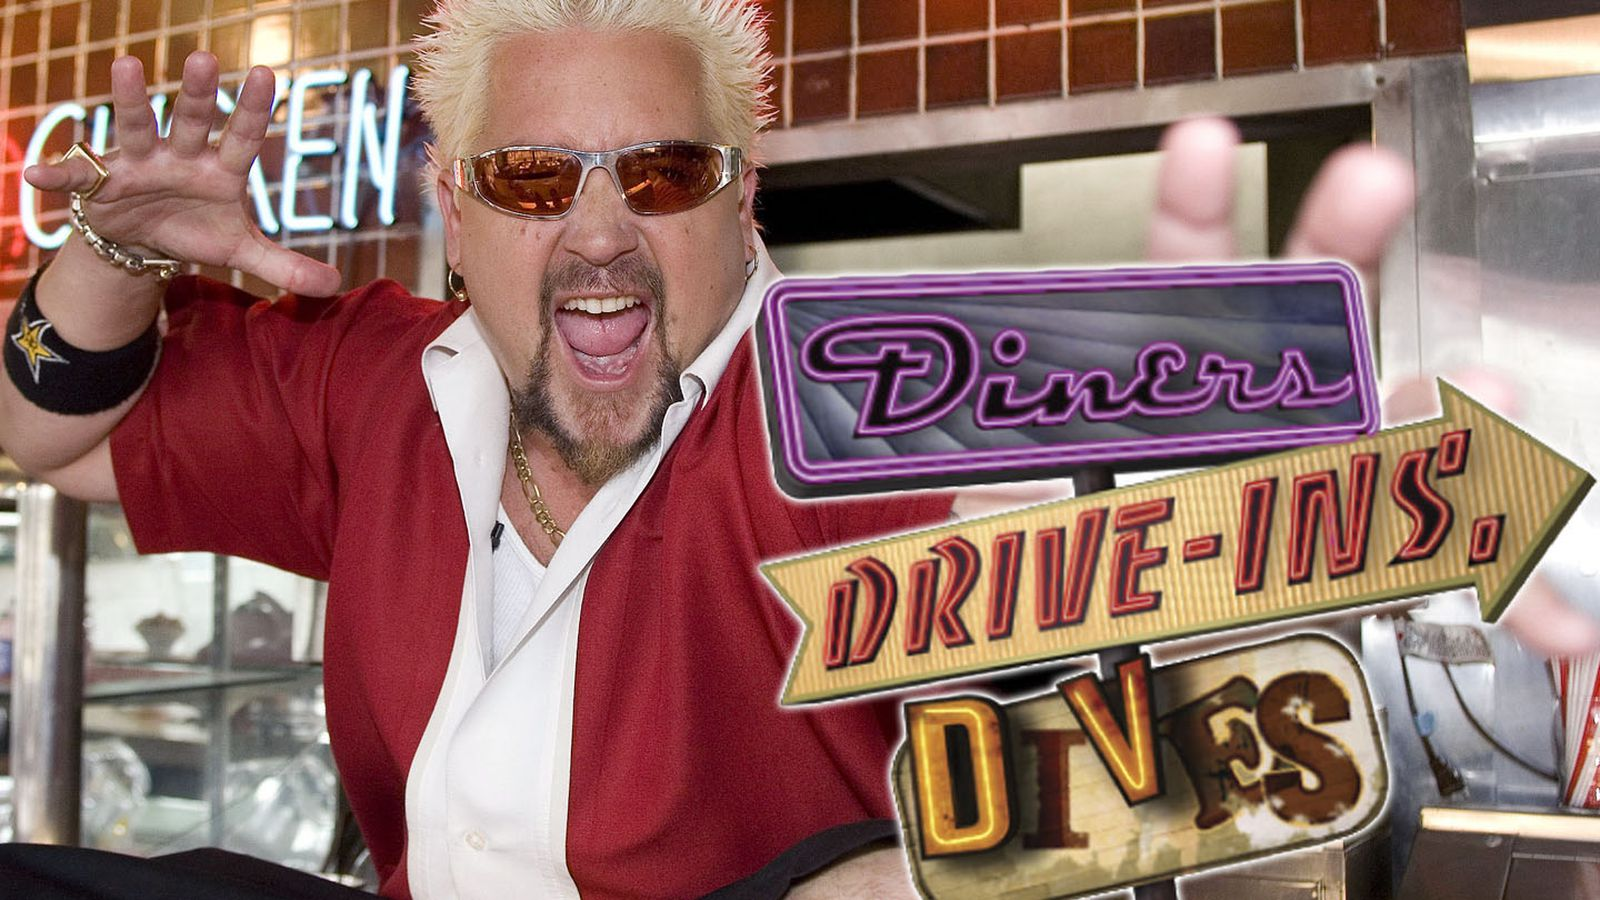 Diners, Drive-ins and Dives Washington Restaurant Listings ...